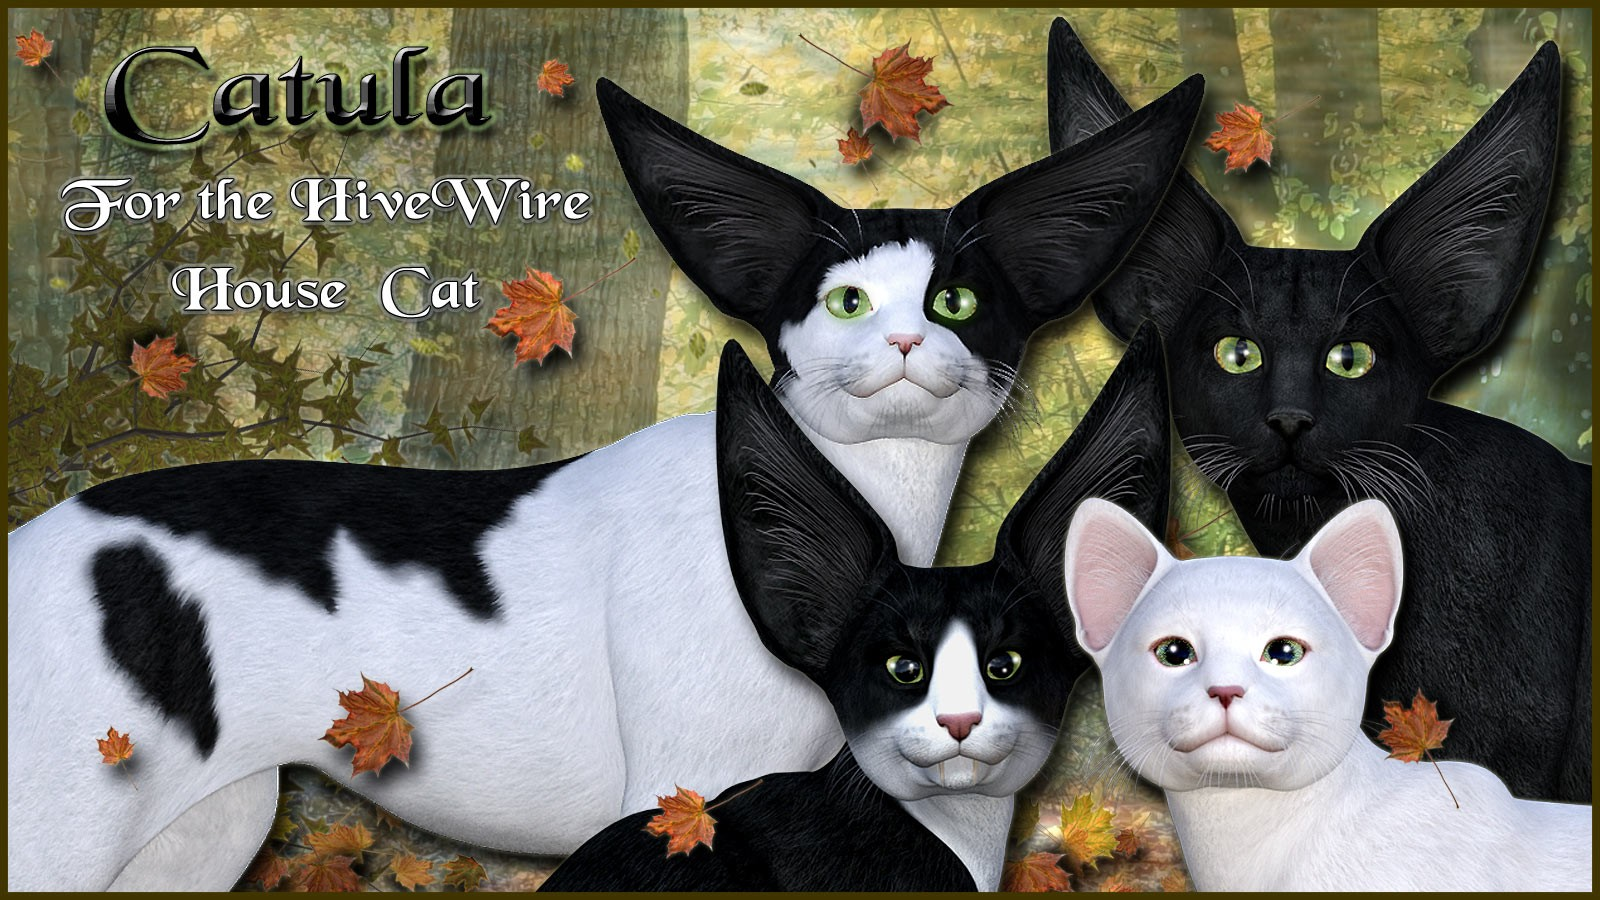 11713-catula-for-the-hivewire-house-cat-main.jpg